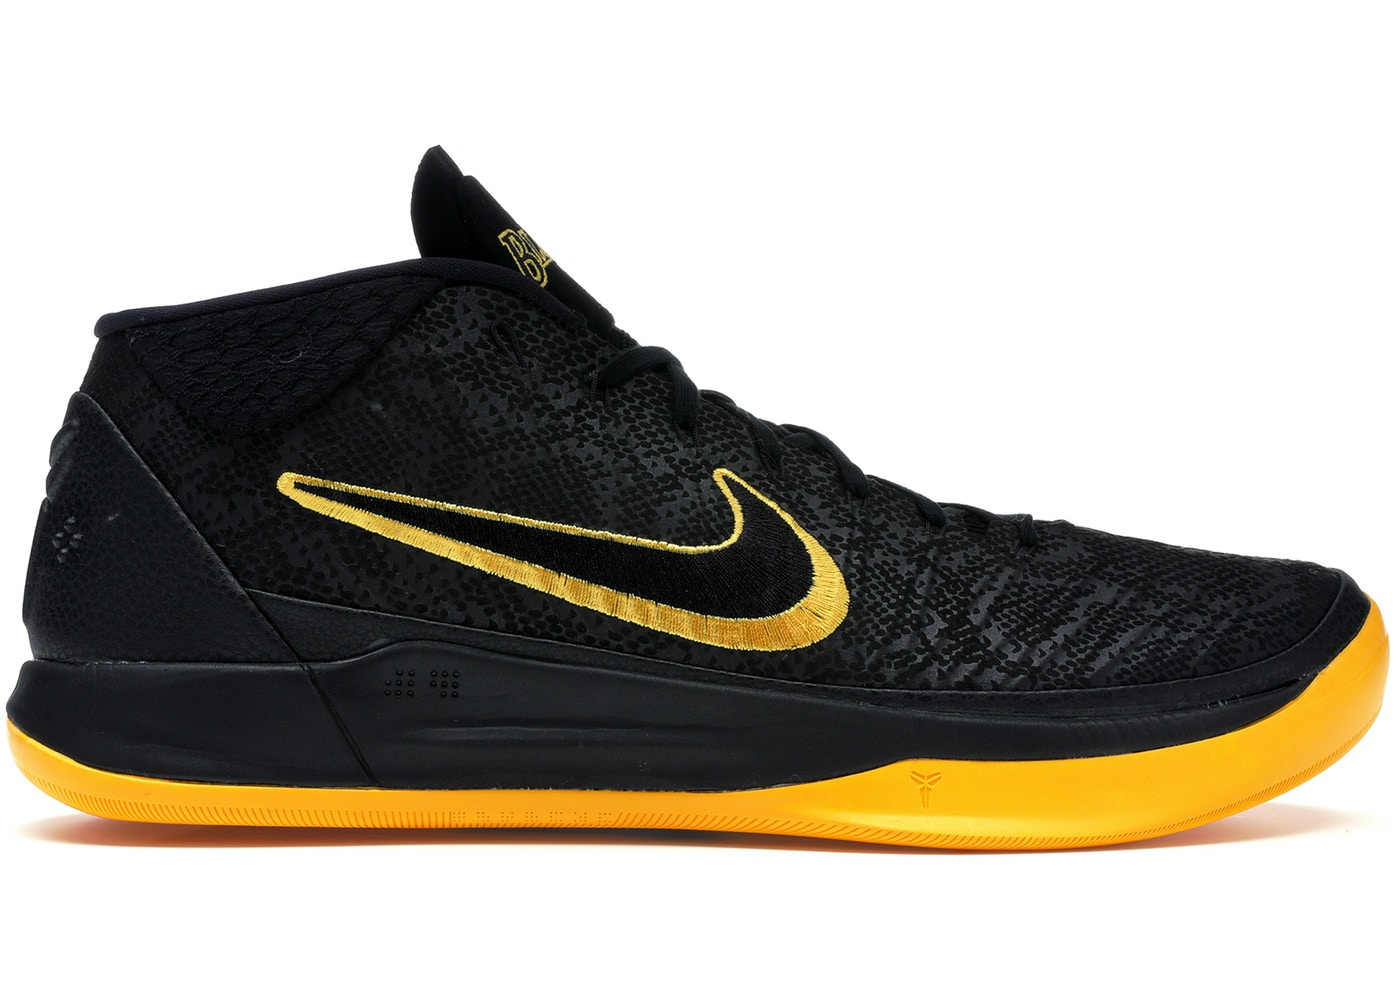 official photos ad0a3 99766 Kobe A.D. Lakers Black Mamba - AQ5164-001